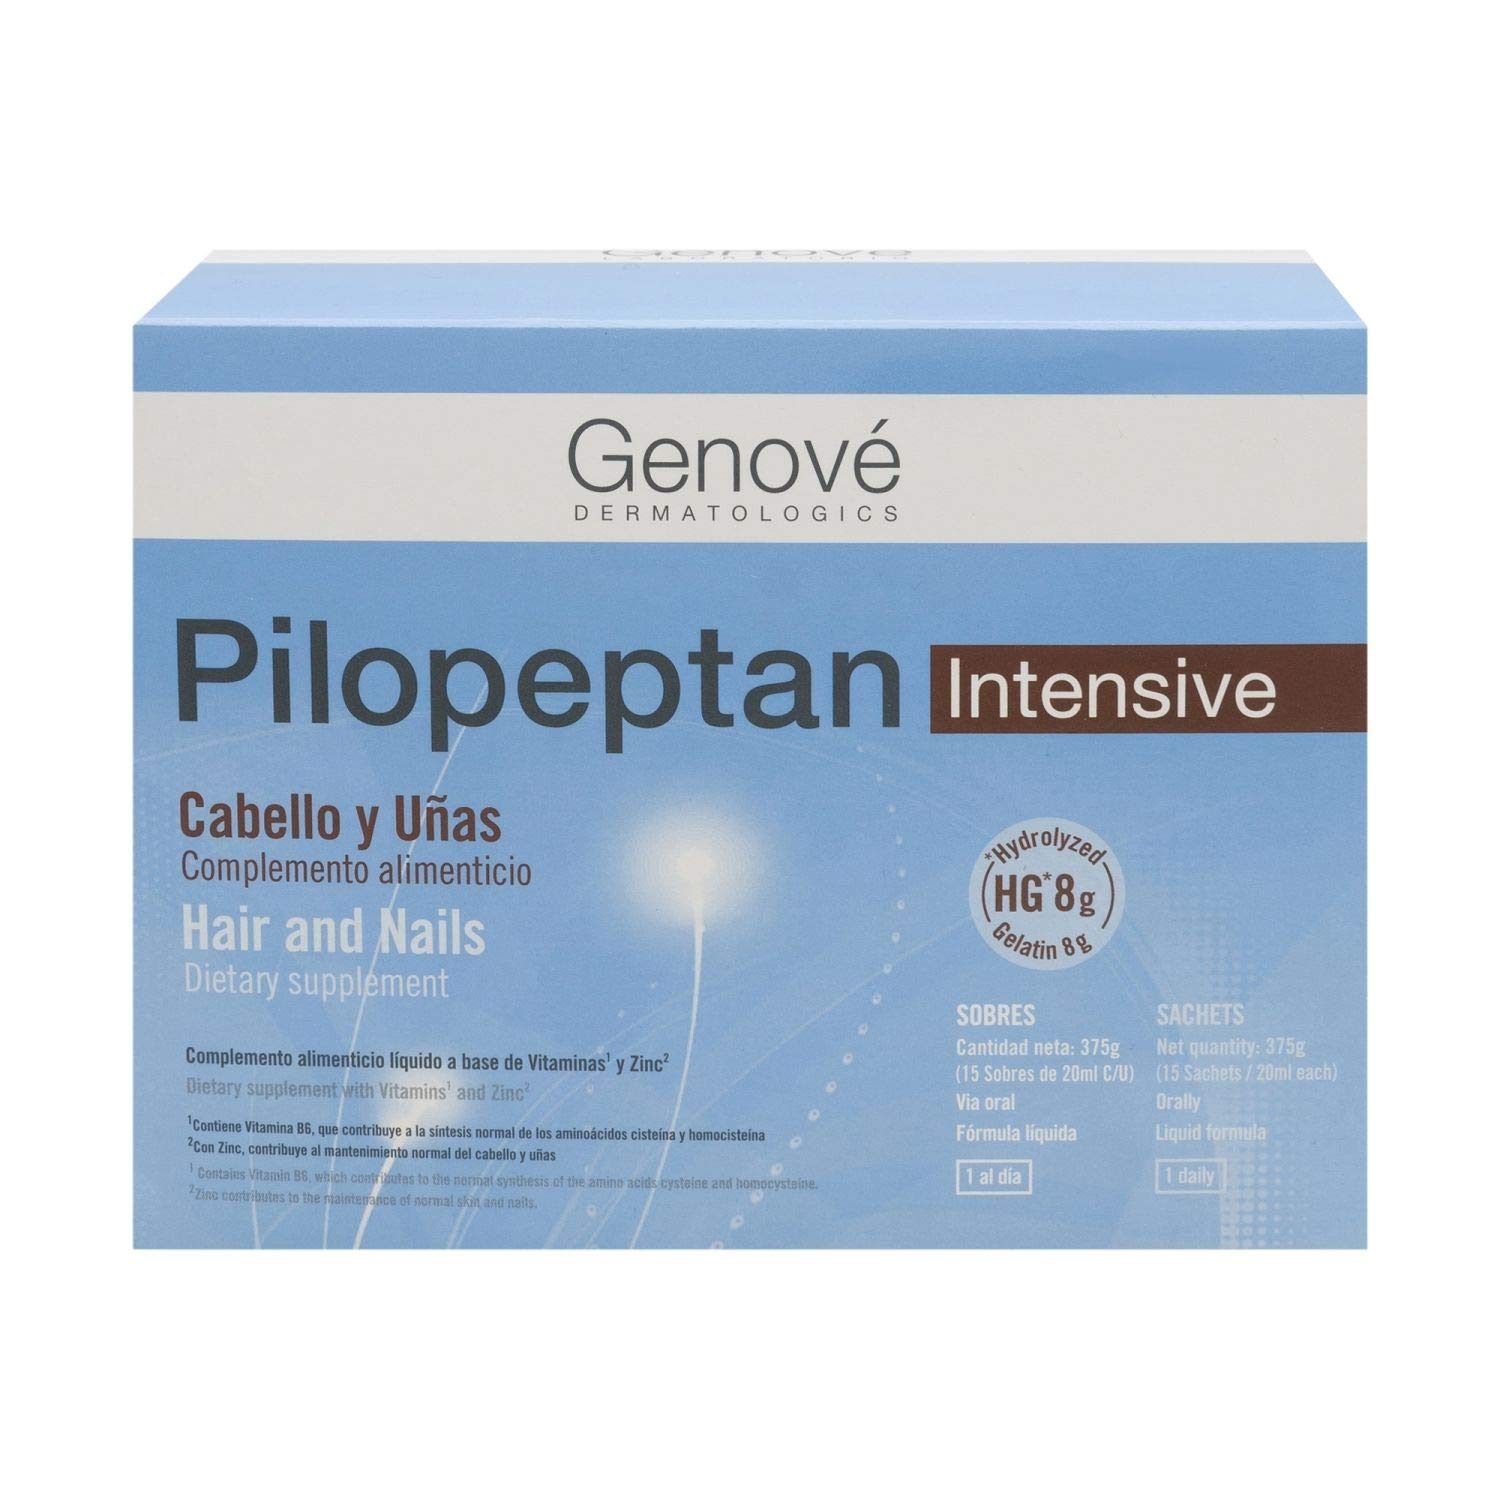 Amazon.com : Genové Pilopeptan Intense Hair And Nails 15 Satches - Anti Hair Loss Treatment - Hair Regrowth Treatment - Collagen for Your Nails : Beauty